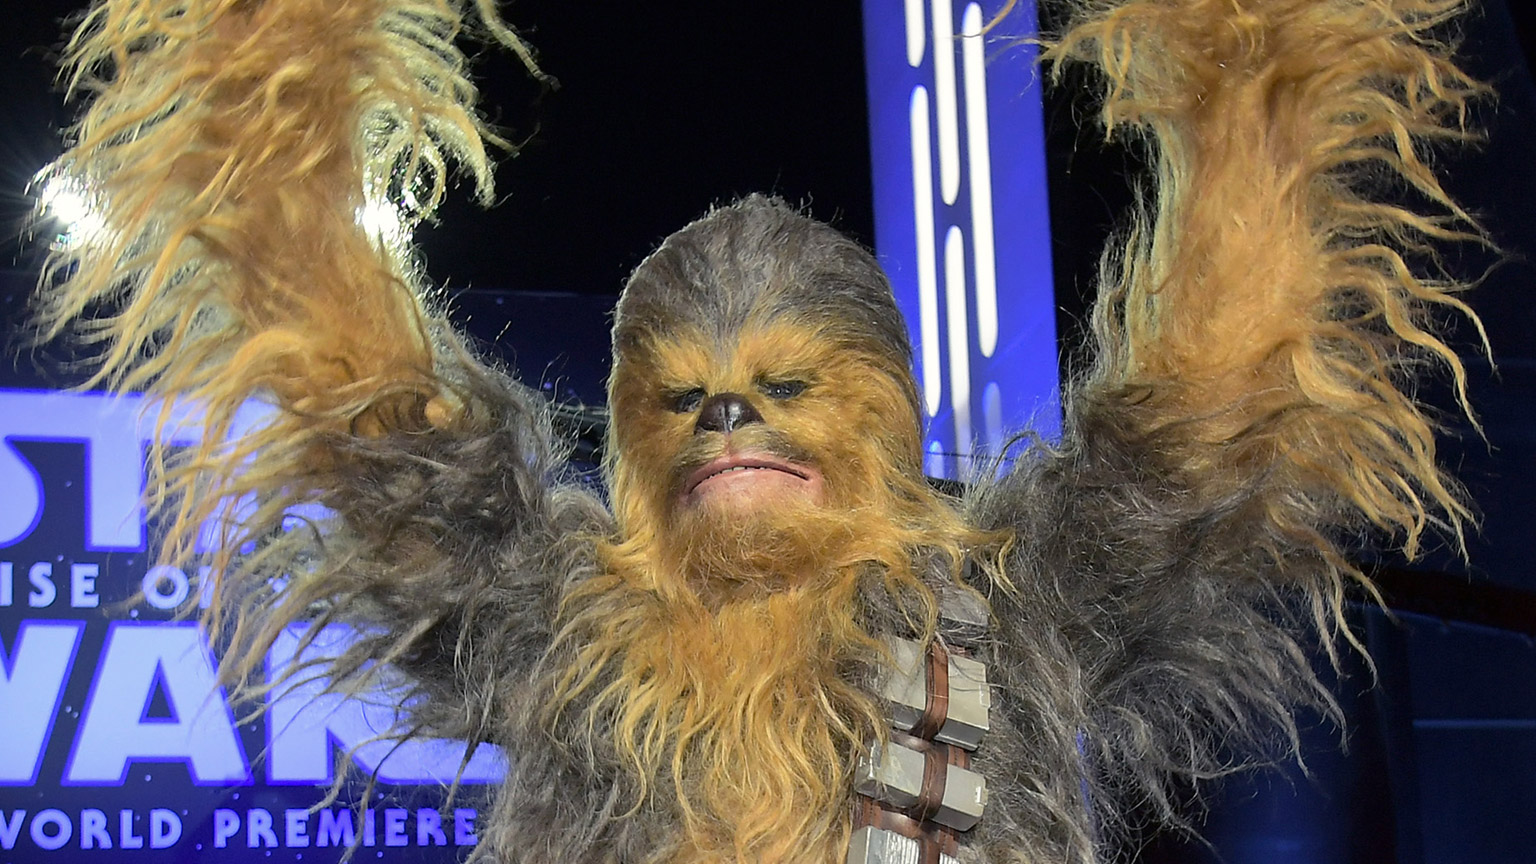 Chewbacca arrives for the World Premiere of Star Wars: The Rise of Skywalker on December 16, 2019 in Hollywood, California.